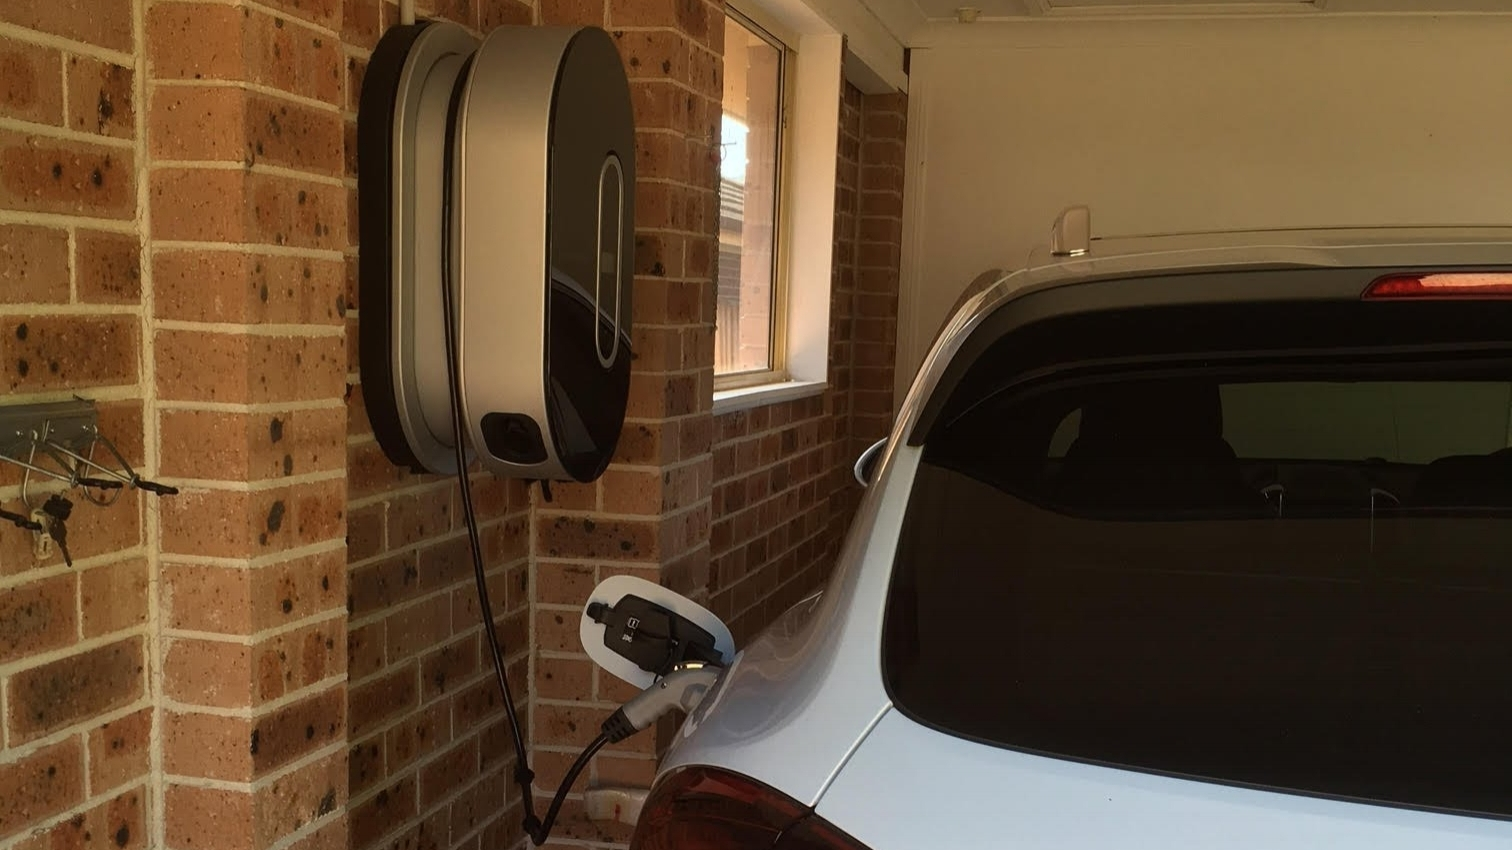 How long to charge my car? - No two cars or chargers interact the same. Know what charging speeds to expect